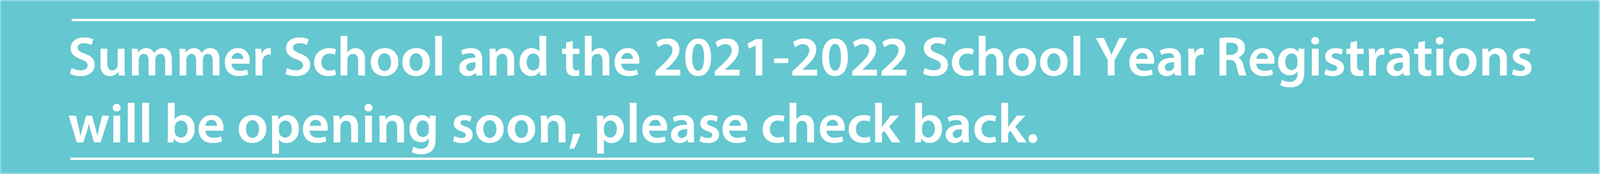 Summer School and the 2021-2022 school year registrations will be opening soon, please check back..jpg